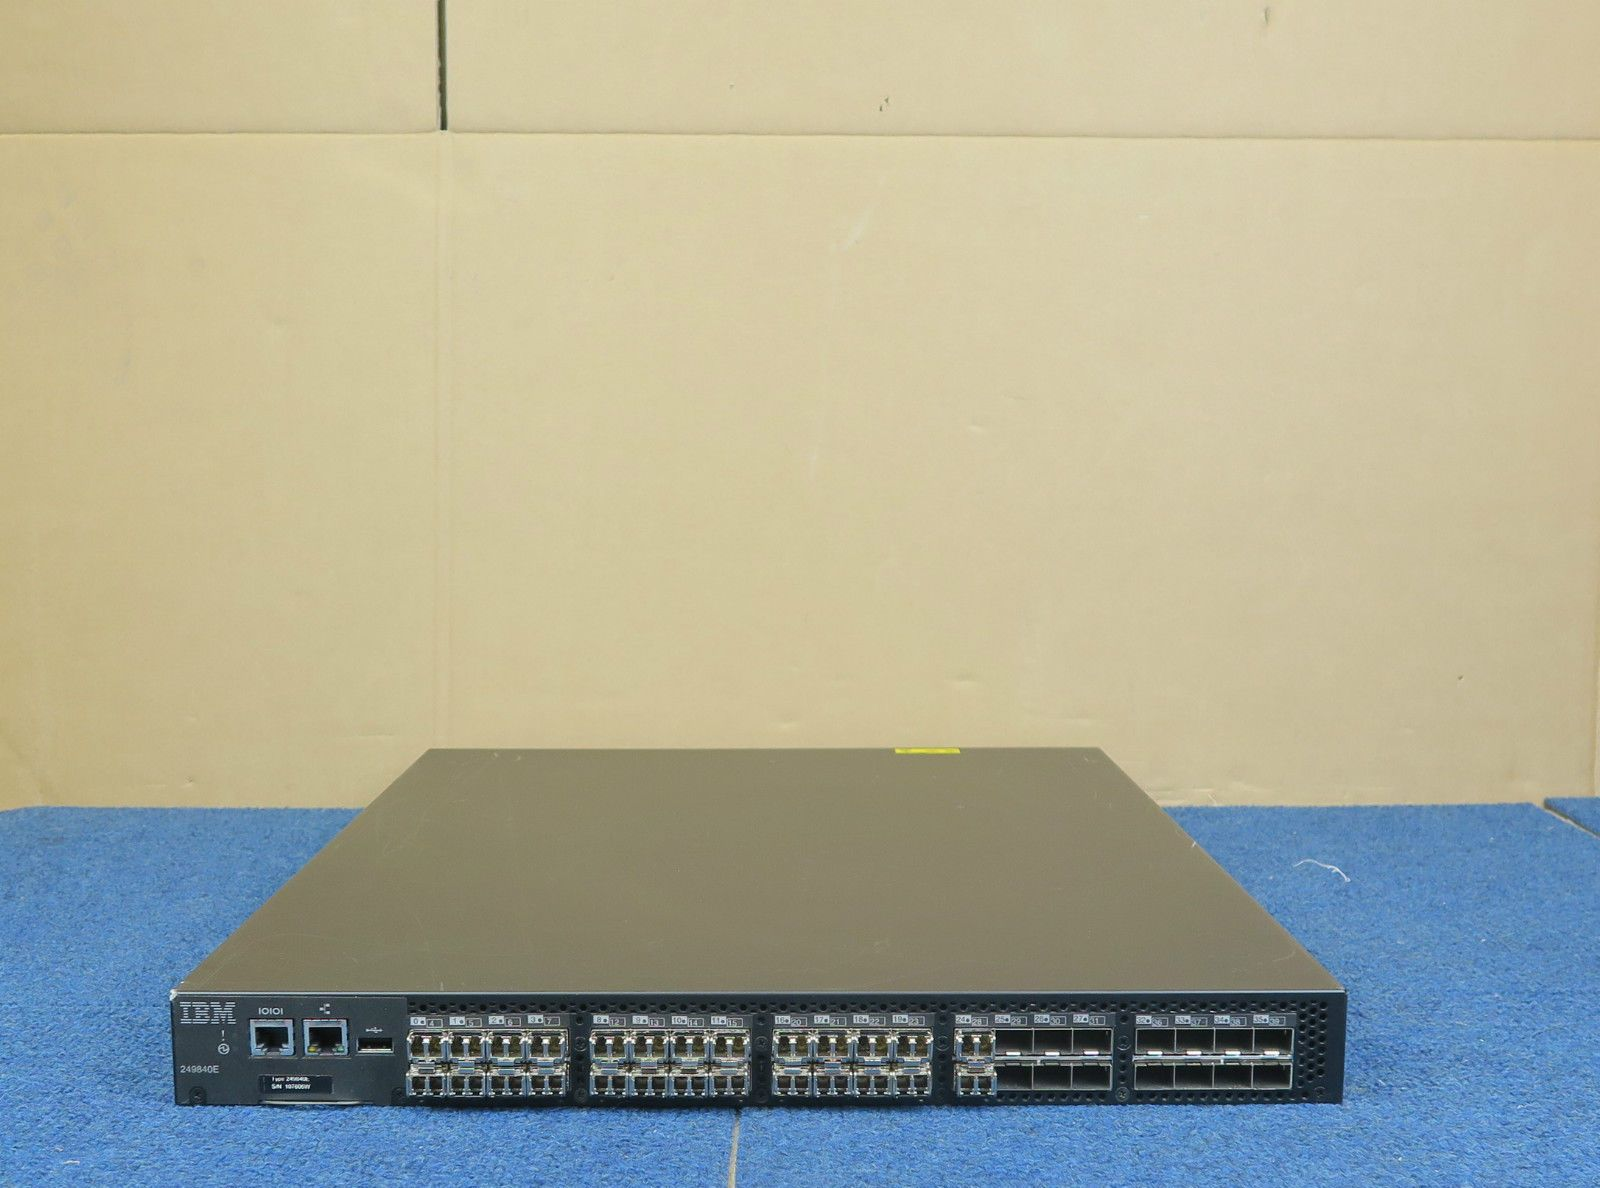 IBM SAN40B-4 2498-40E 40 Port 8Gbps Fibre Channel 24 active ports 1U SAN  Switch